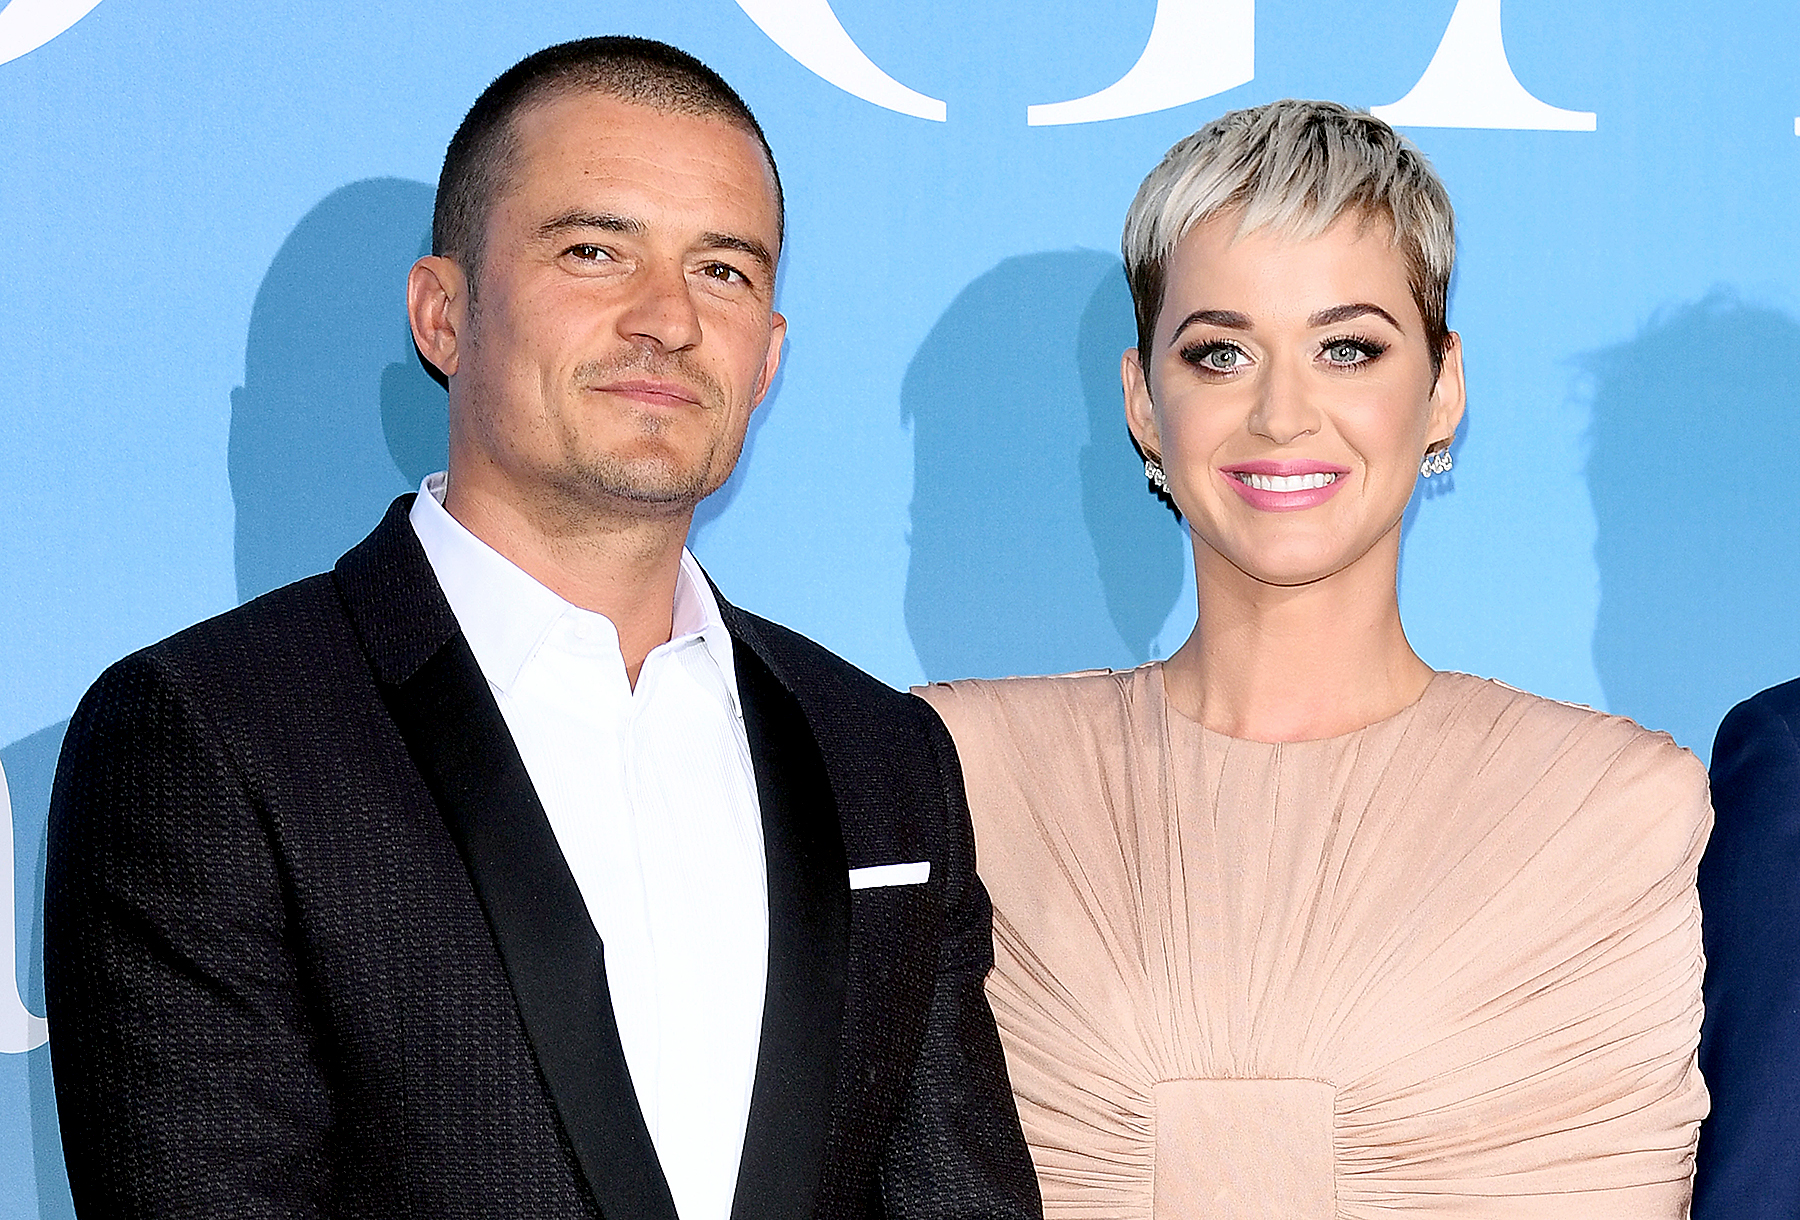 carpet-debut katy perry orlando bloom - After dating on and off for more than two years, the pair finally made their red carpet debut together at the Gala for the Global Ocean in Monaco.